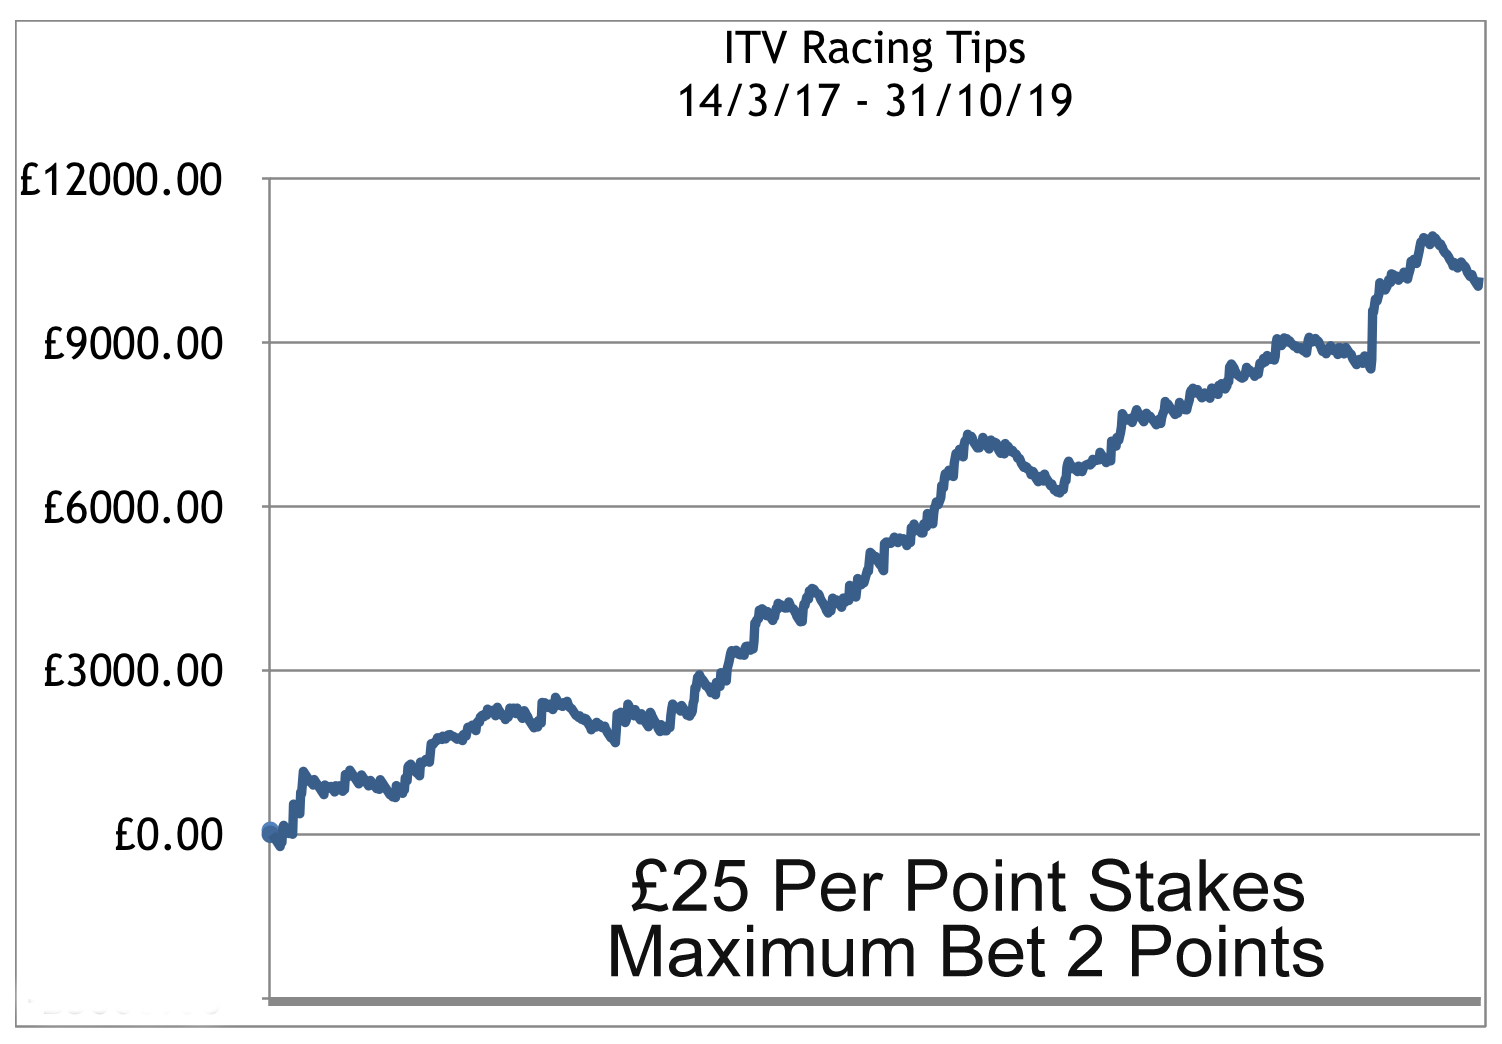 ITV-Racing Profit Chart to October 31st 2019